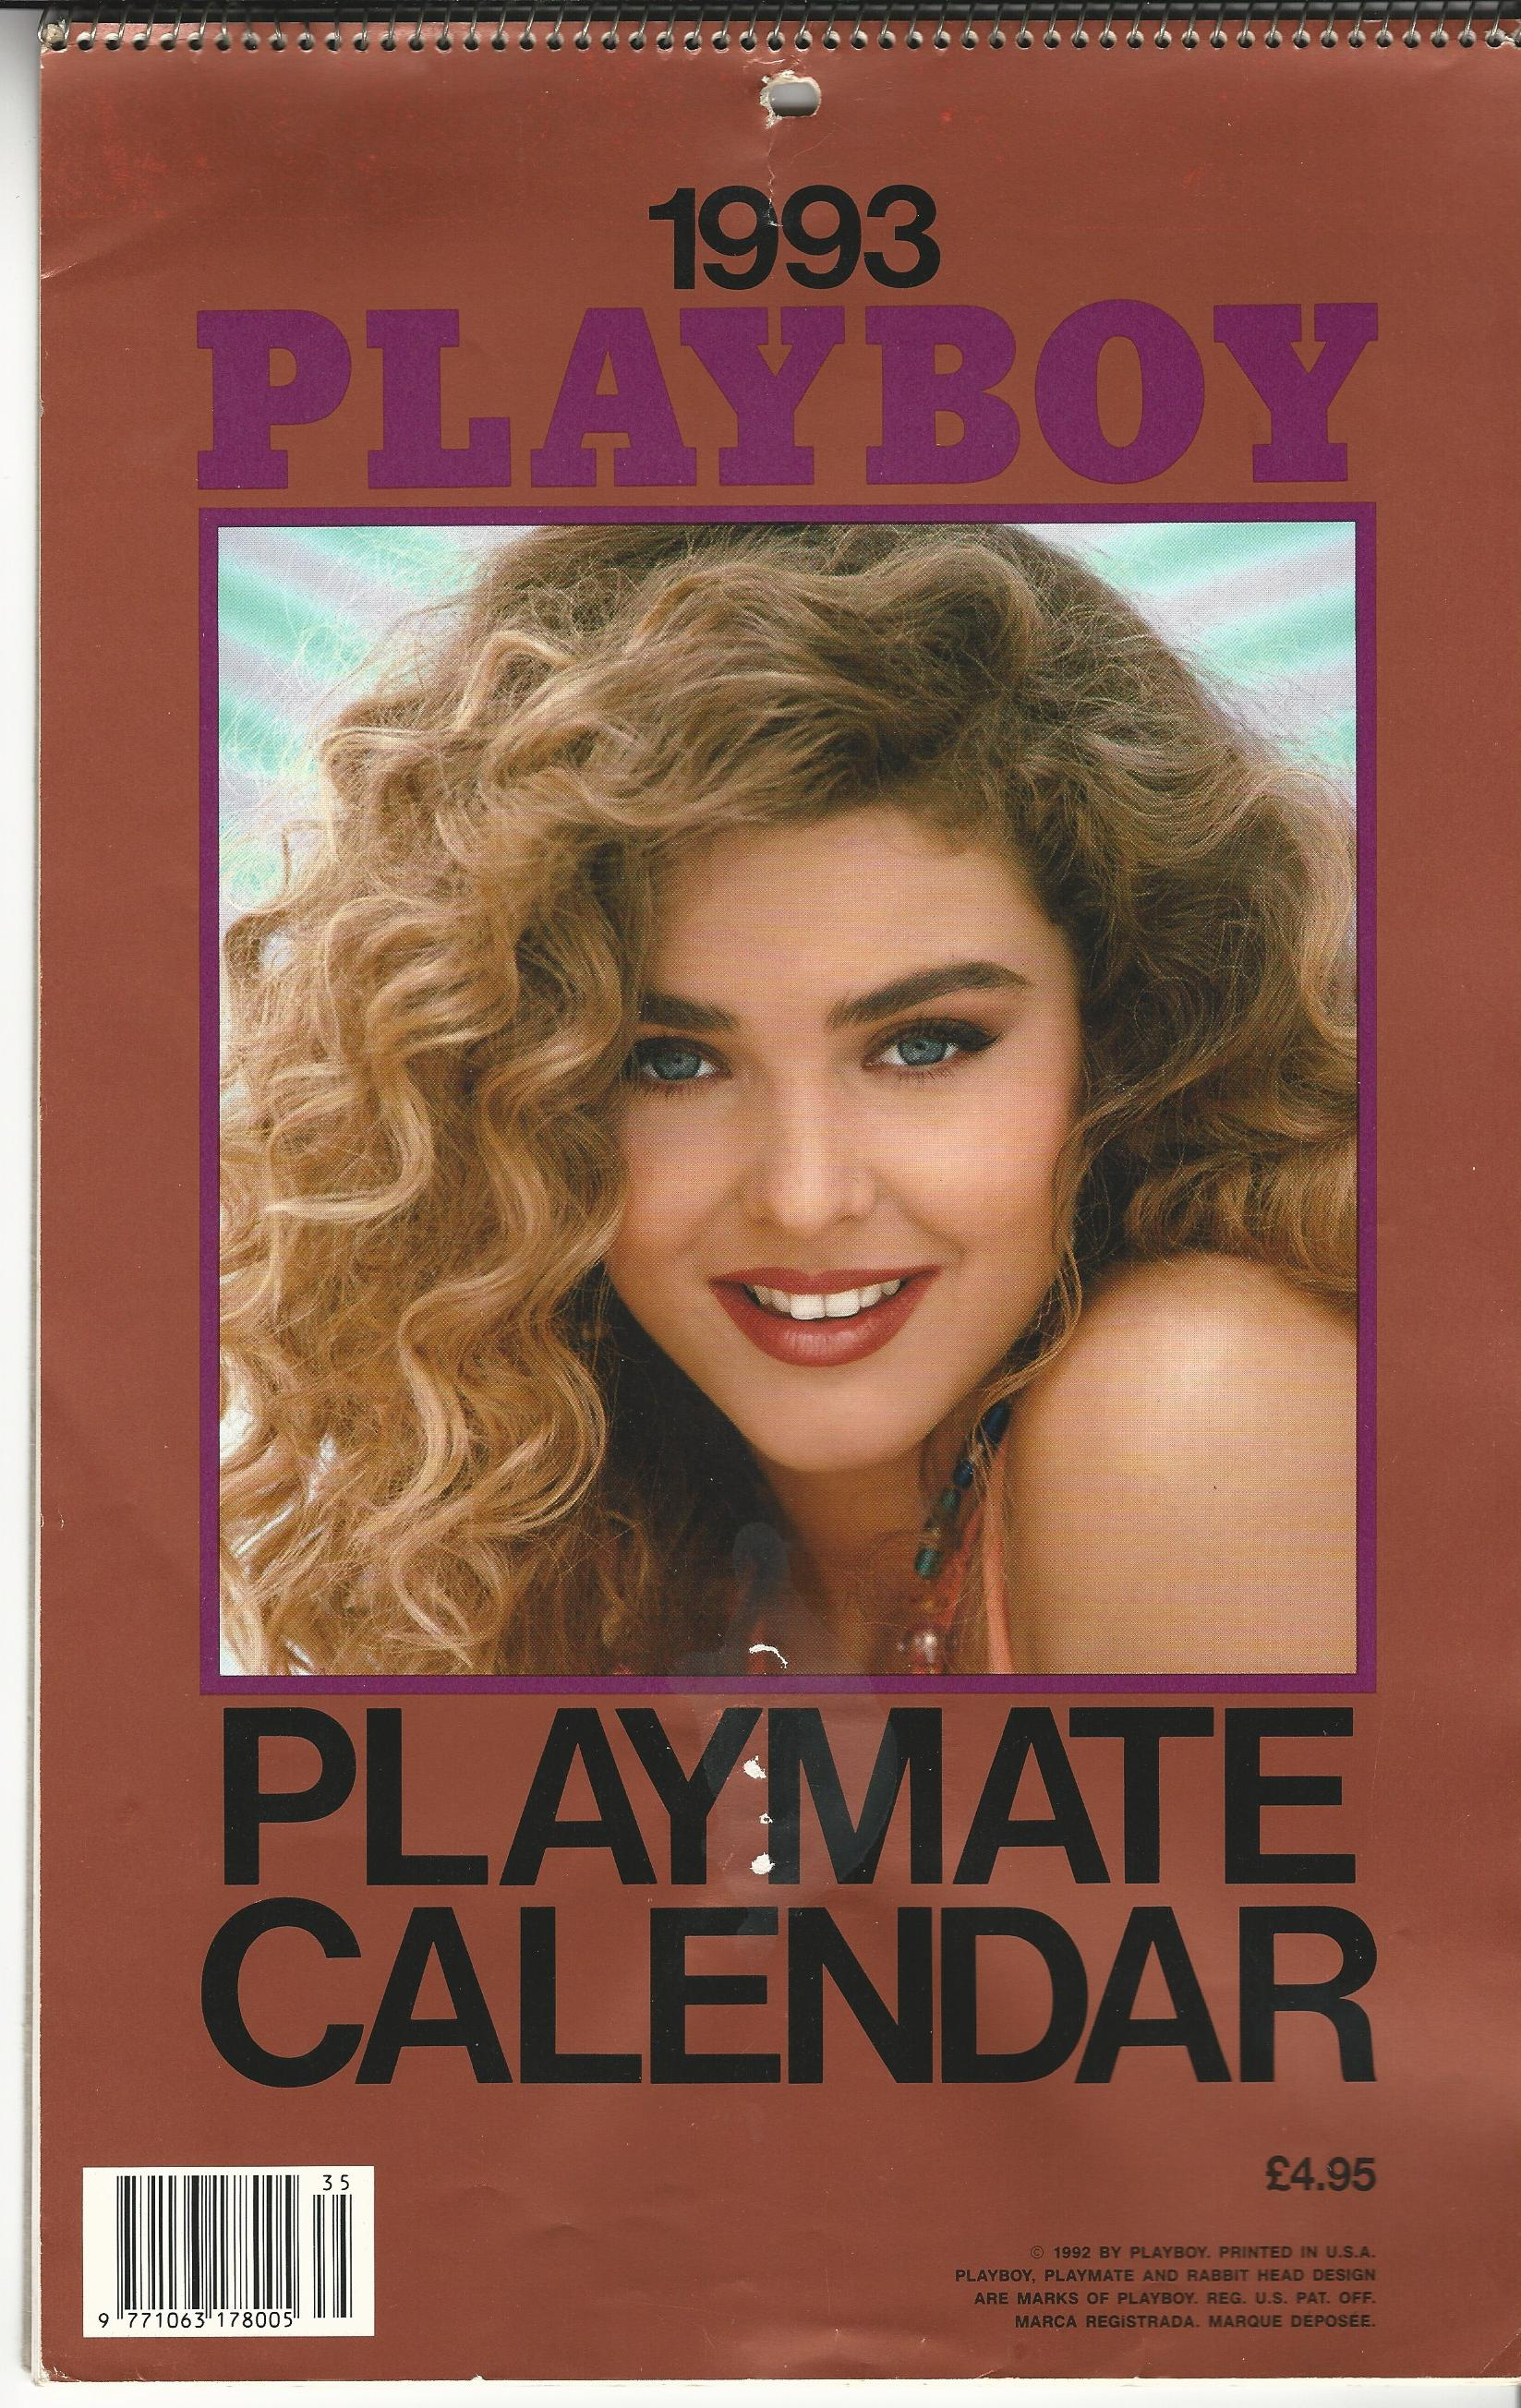 Image for Playboy Playmate Calendar 1993.